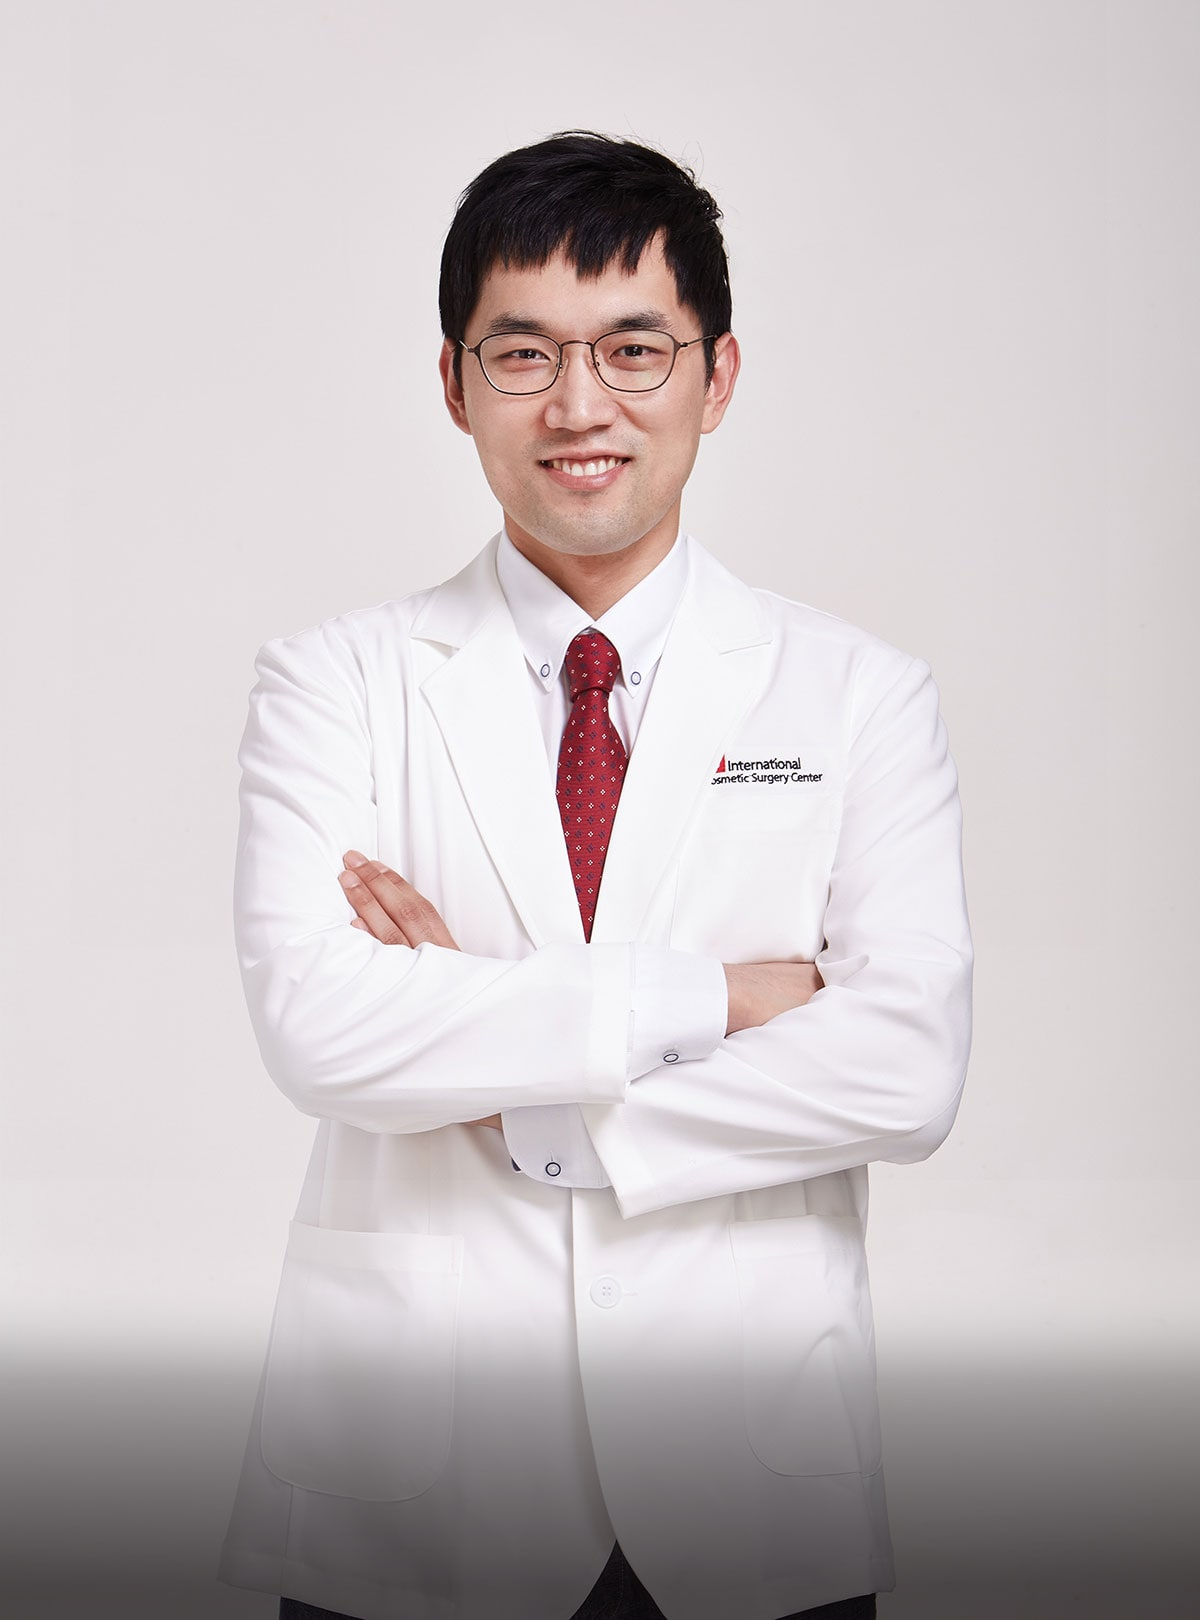 Dr. Cheol Woo Park MD. Ph.D.